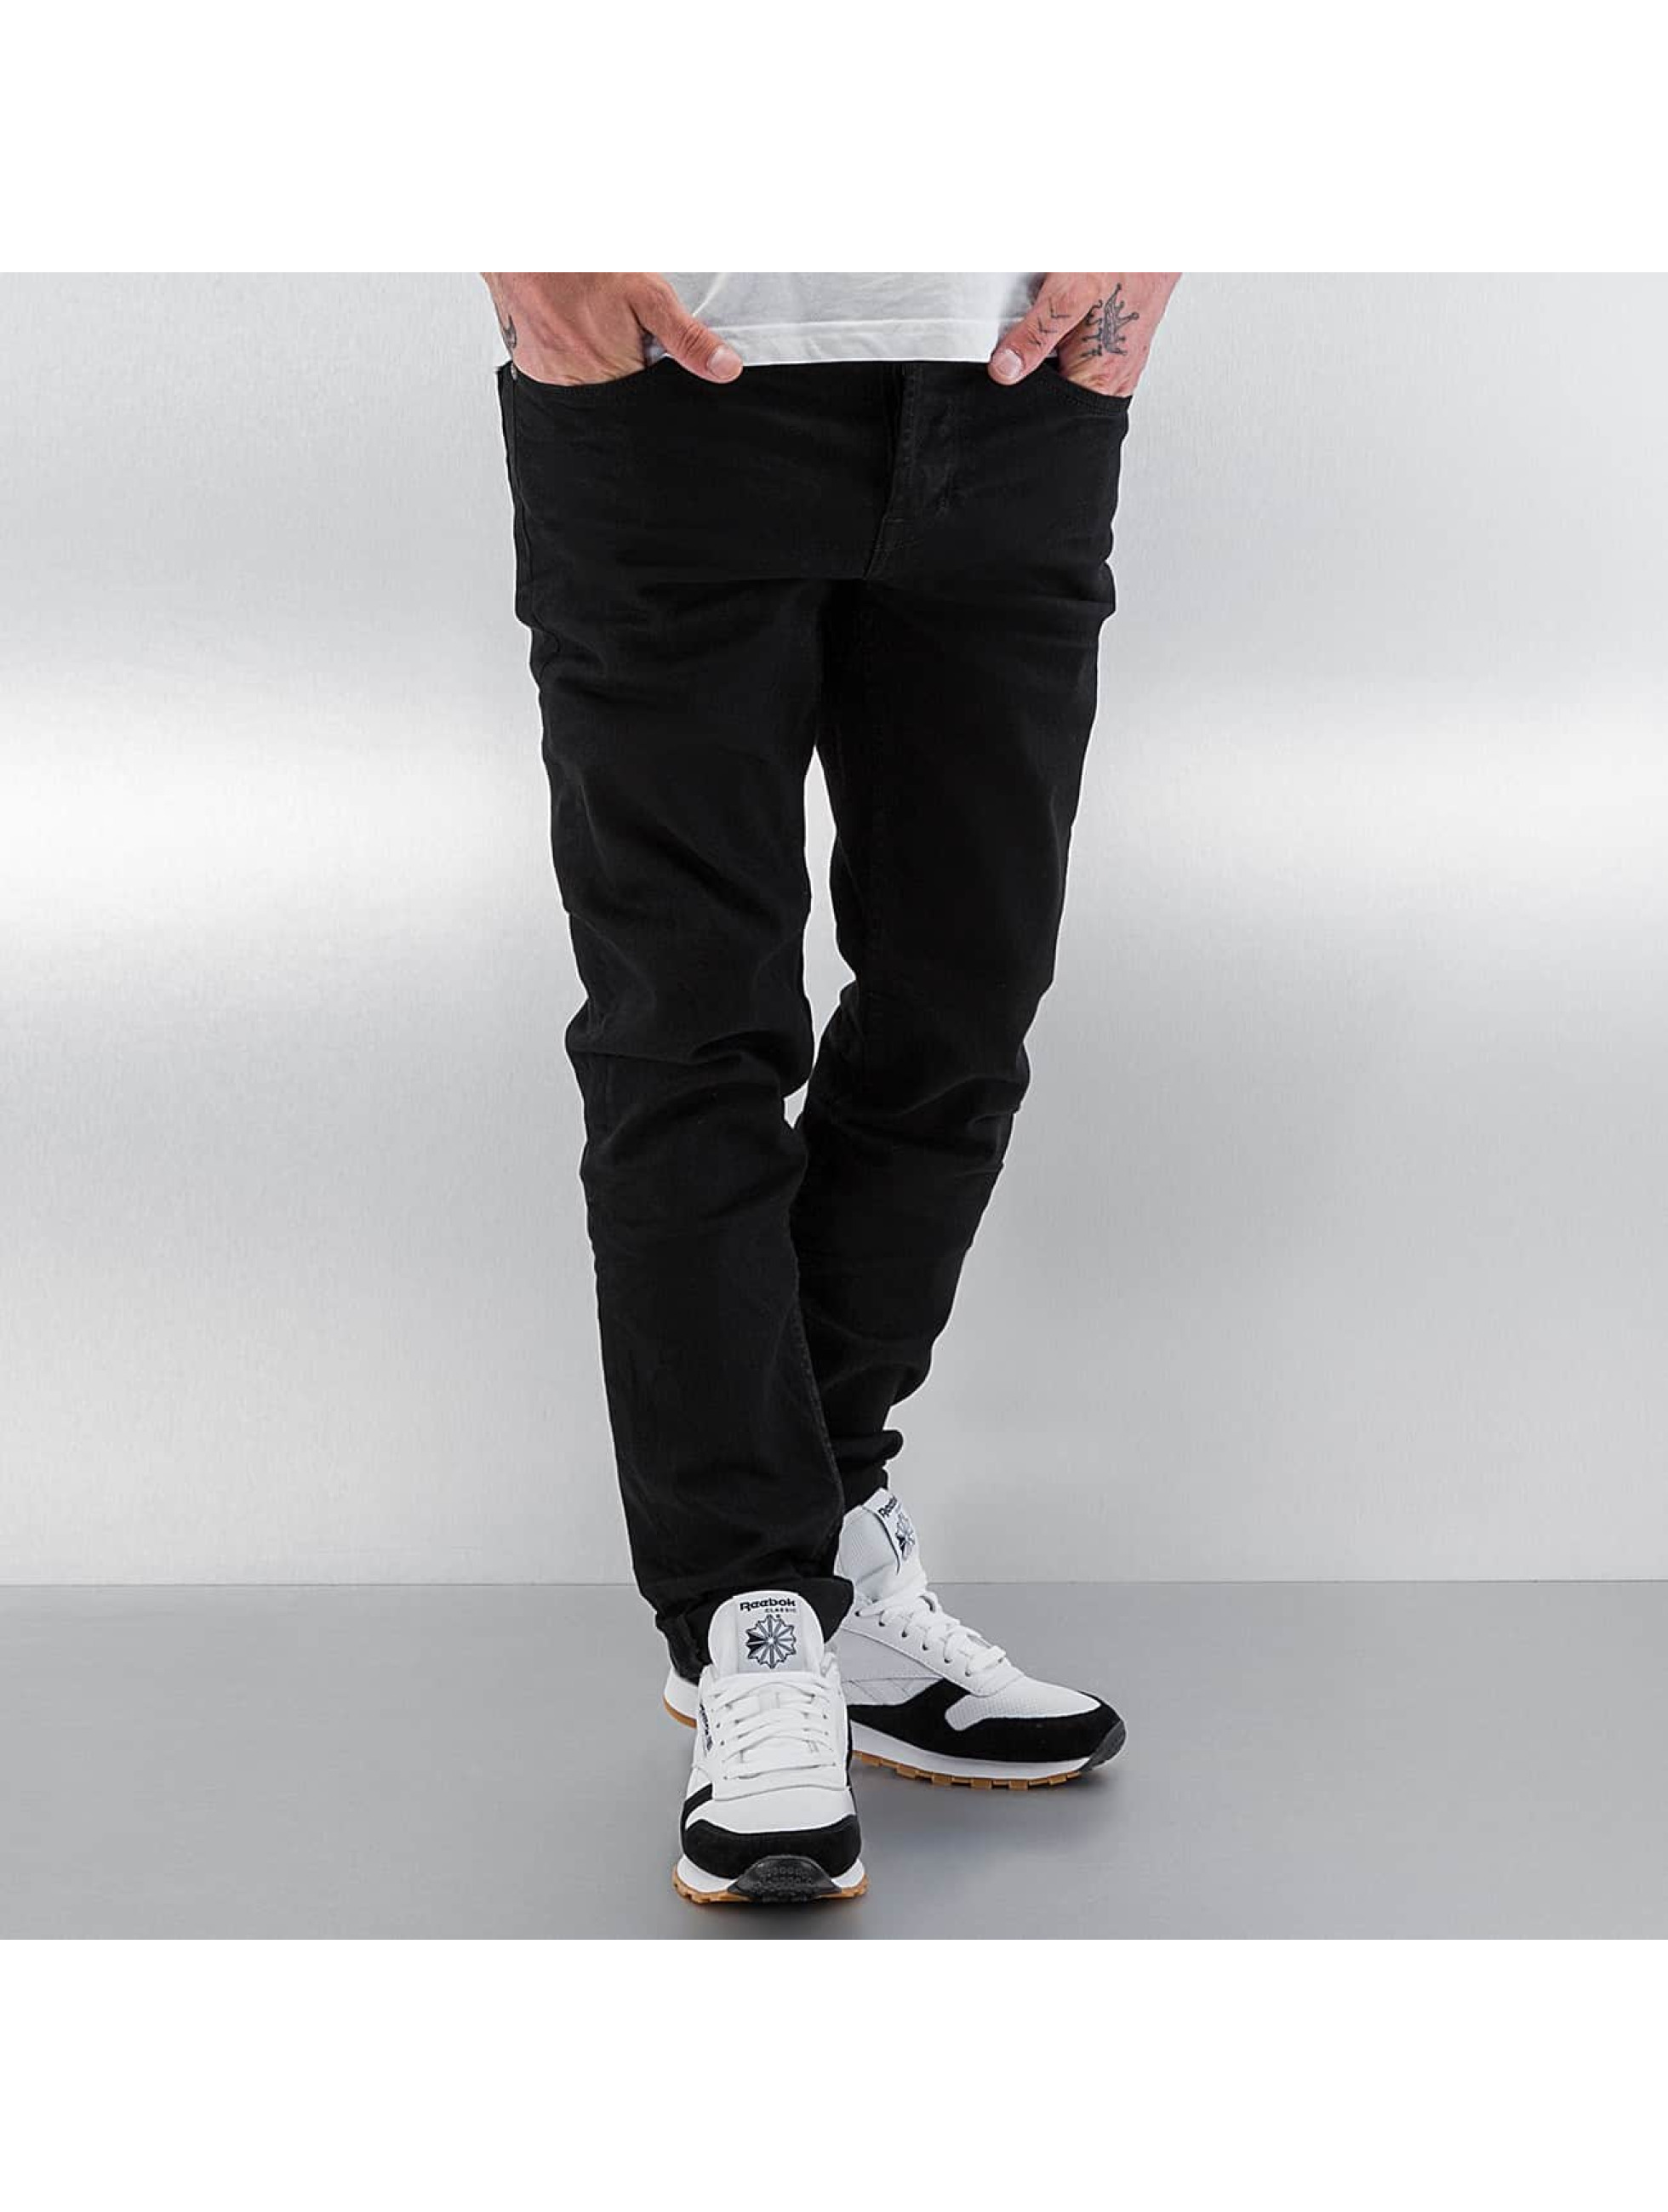 Jack & Jones Jeans / Straight Fit Jeans jjMike jjDevin in schwarz